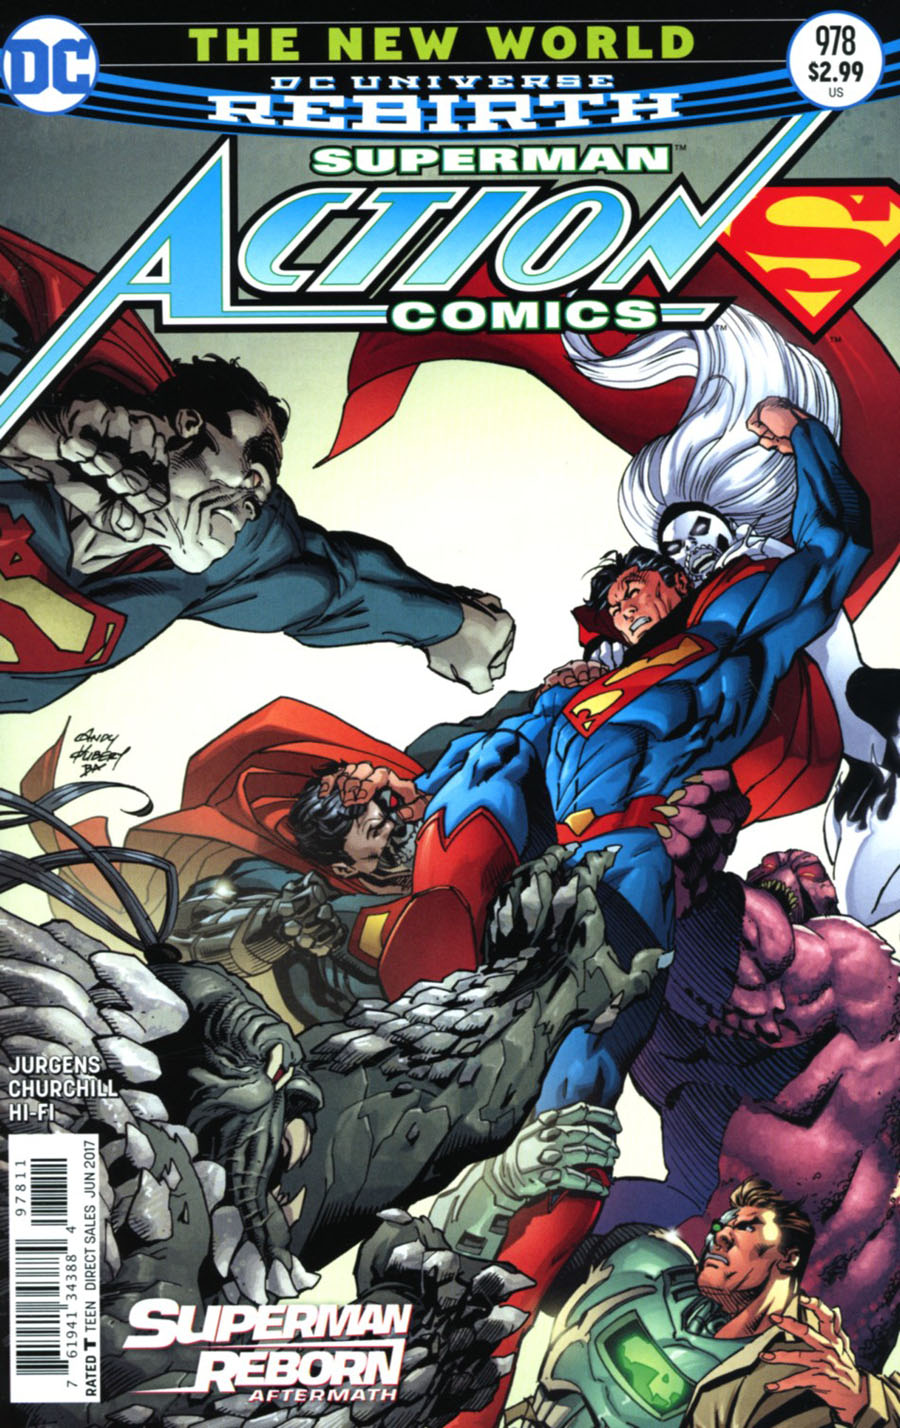 Action Comics Vol 2 #978 Cover A Regular Andy Kubert Cover (Superman Reborn Aftermath Tie-In)